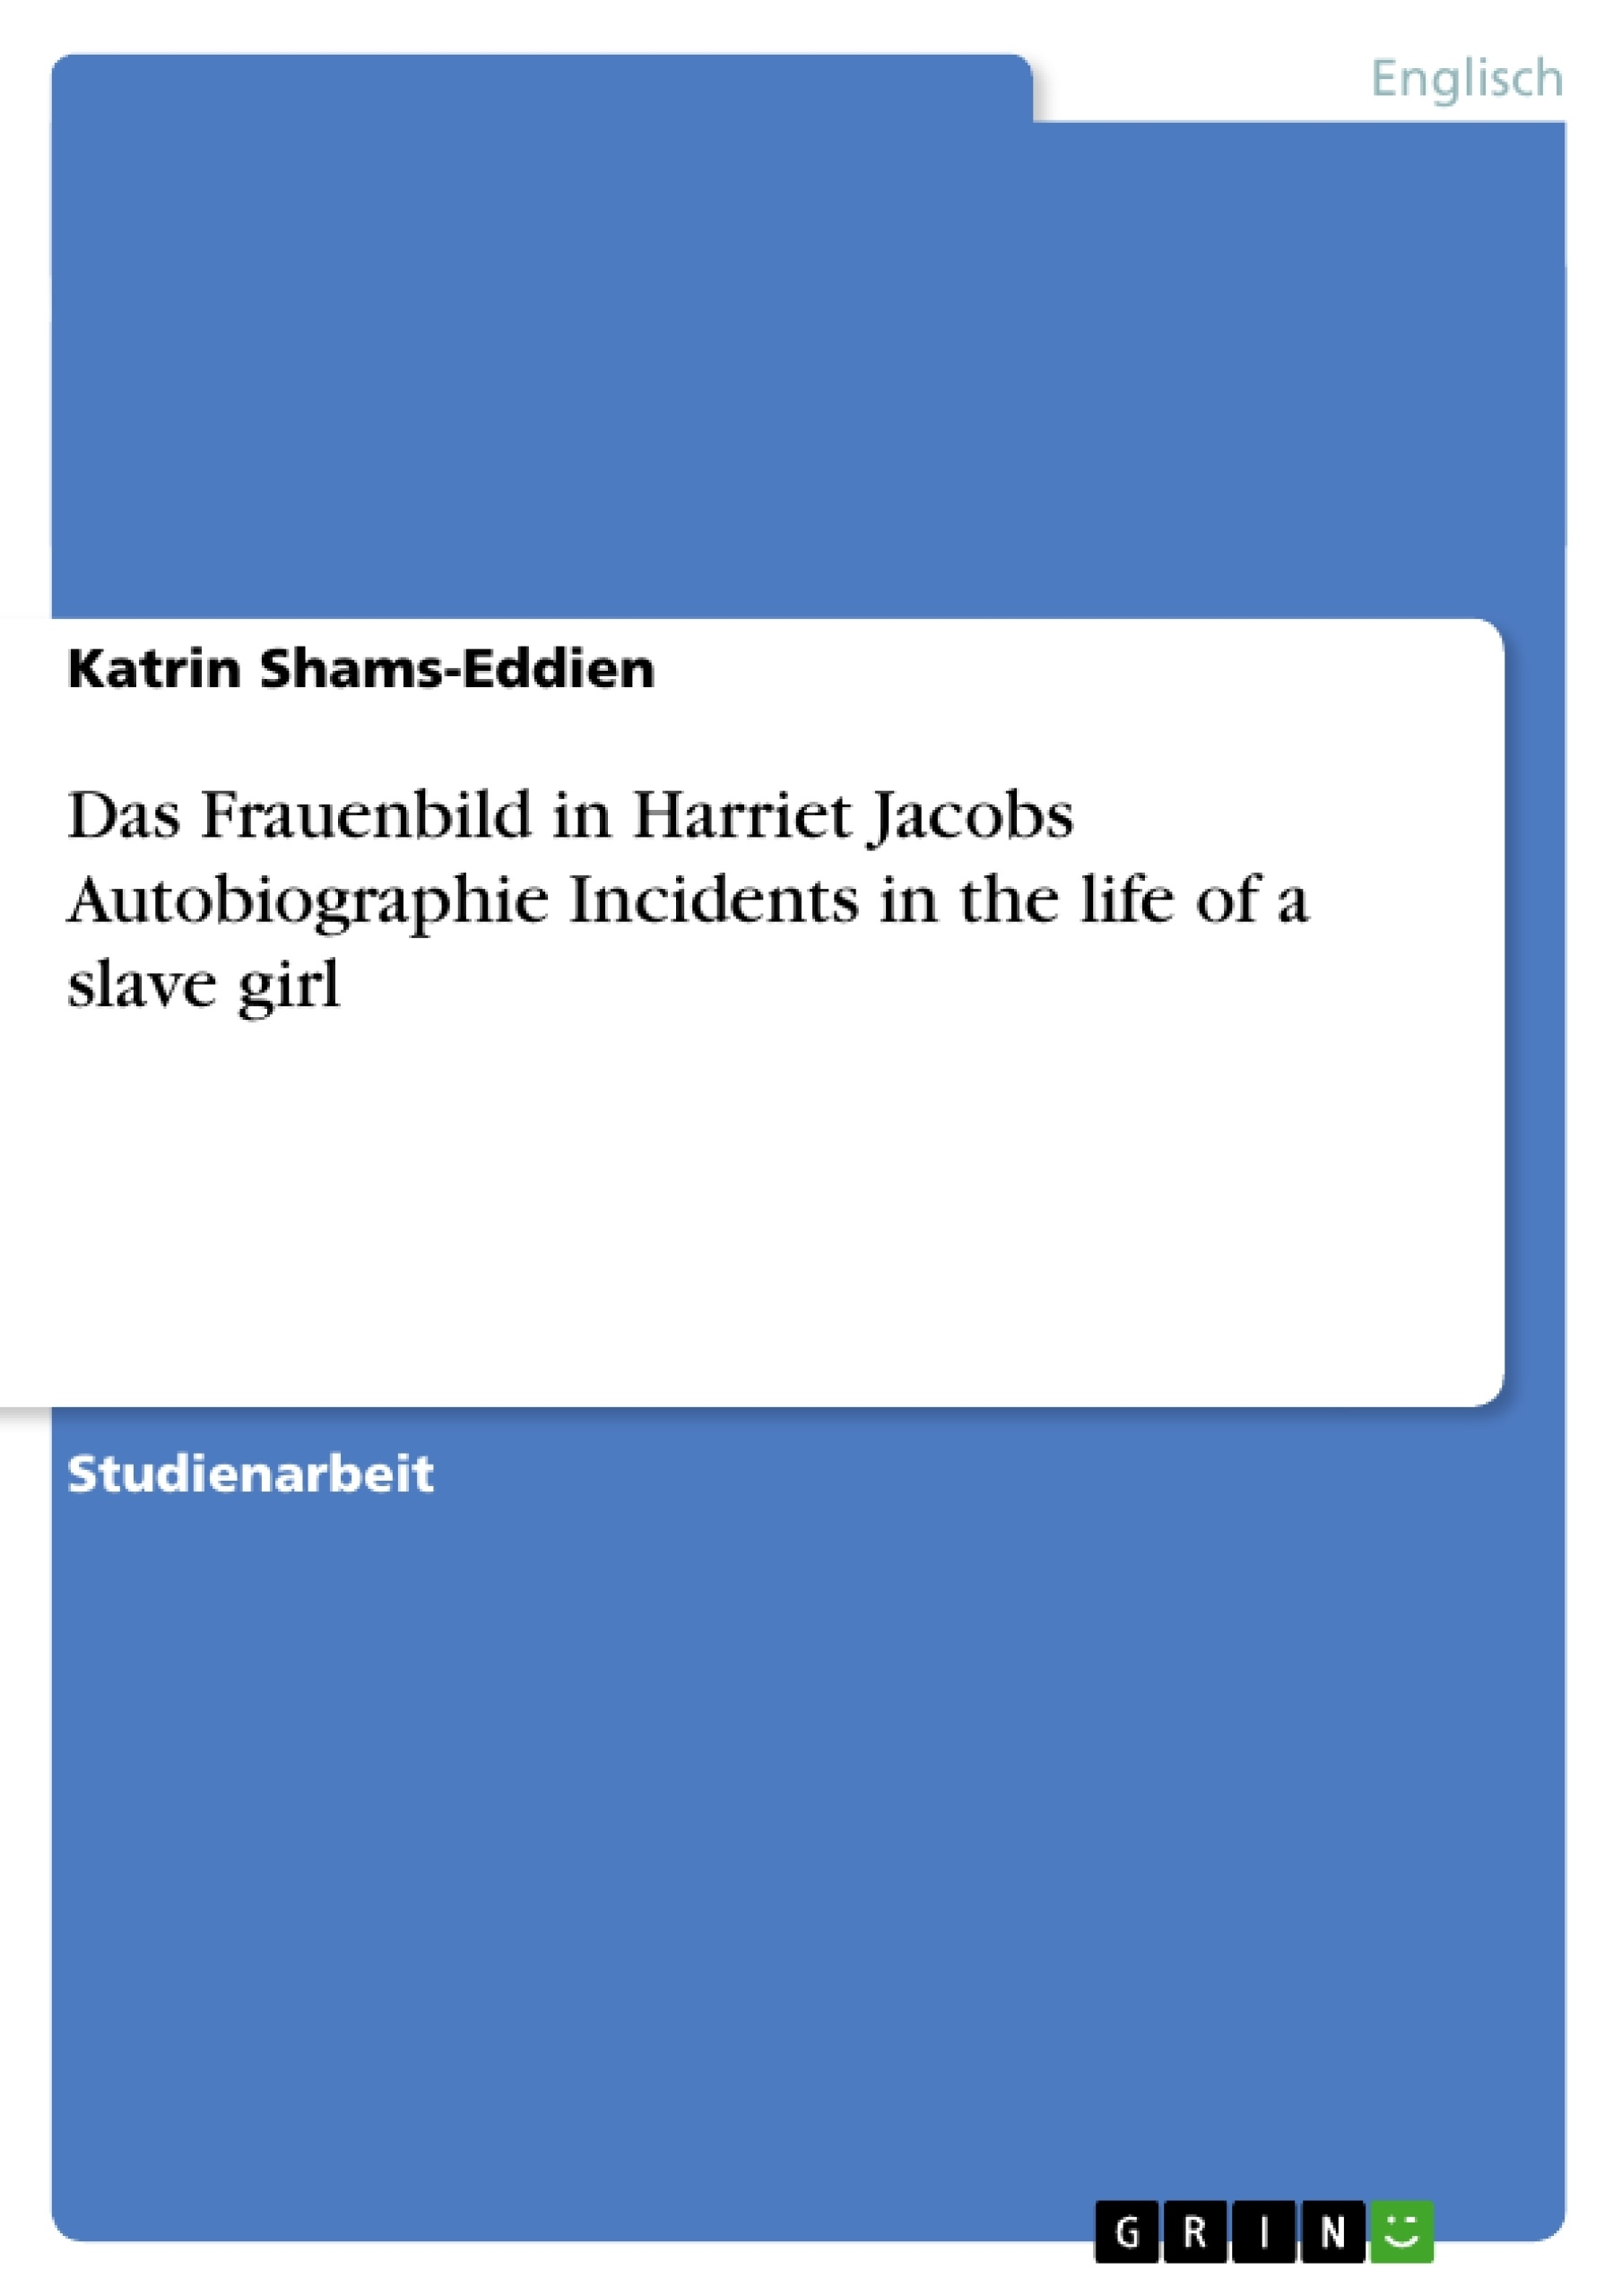 Titel: Das Frauenbild in Harriet Jacobs Autobiographie Incidents in the life of a slave girl